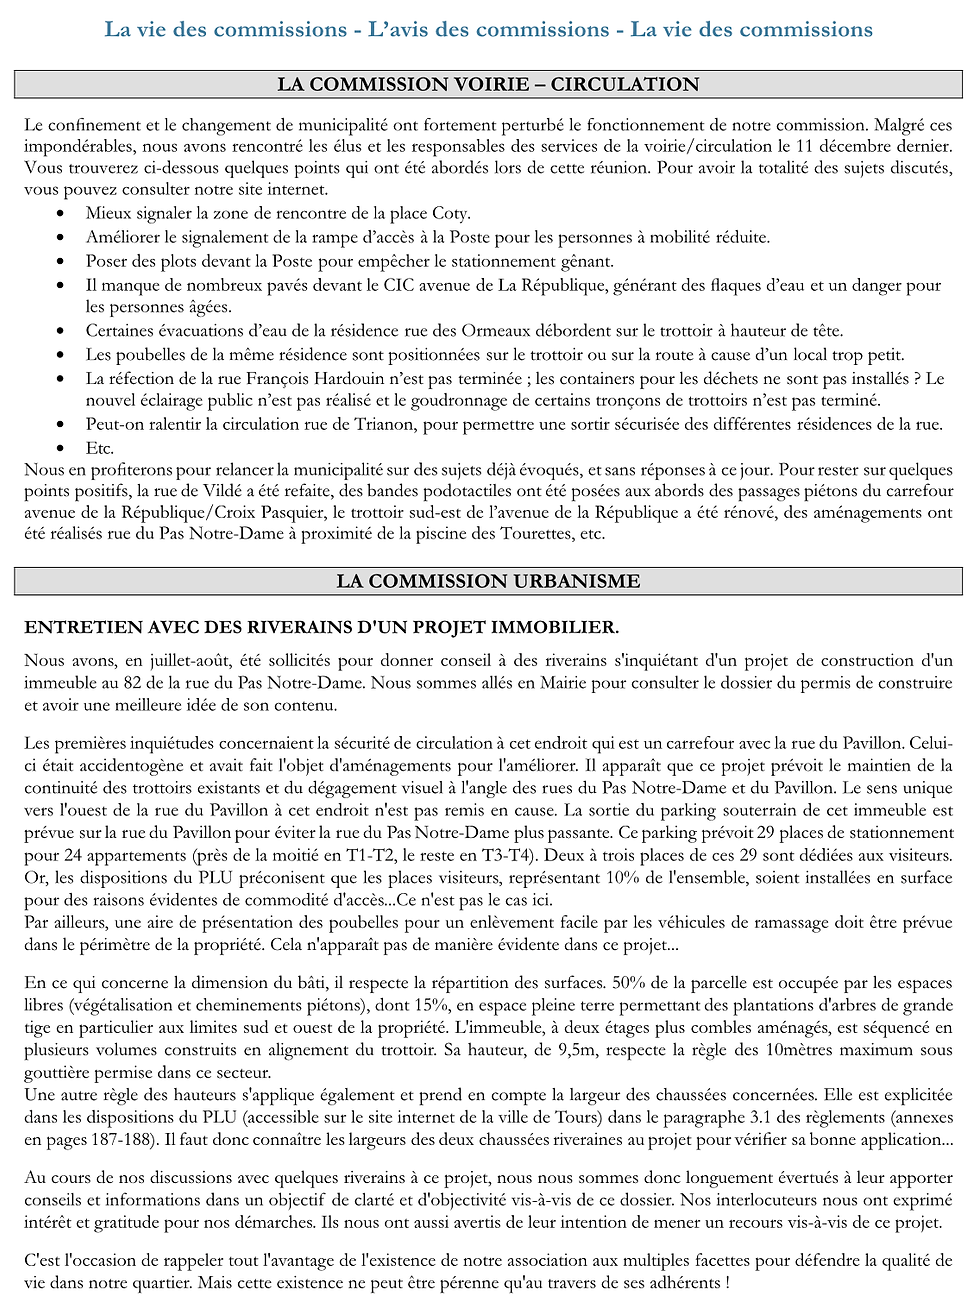 bulletin-24-page2.png